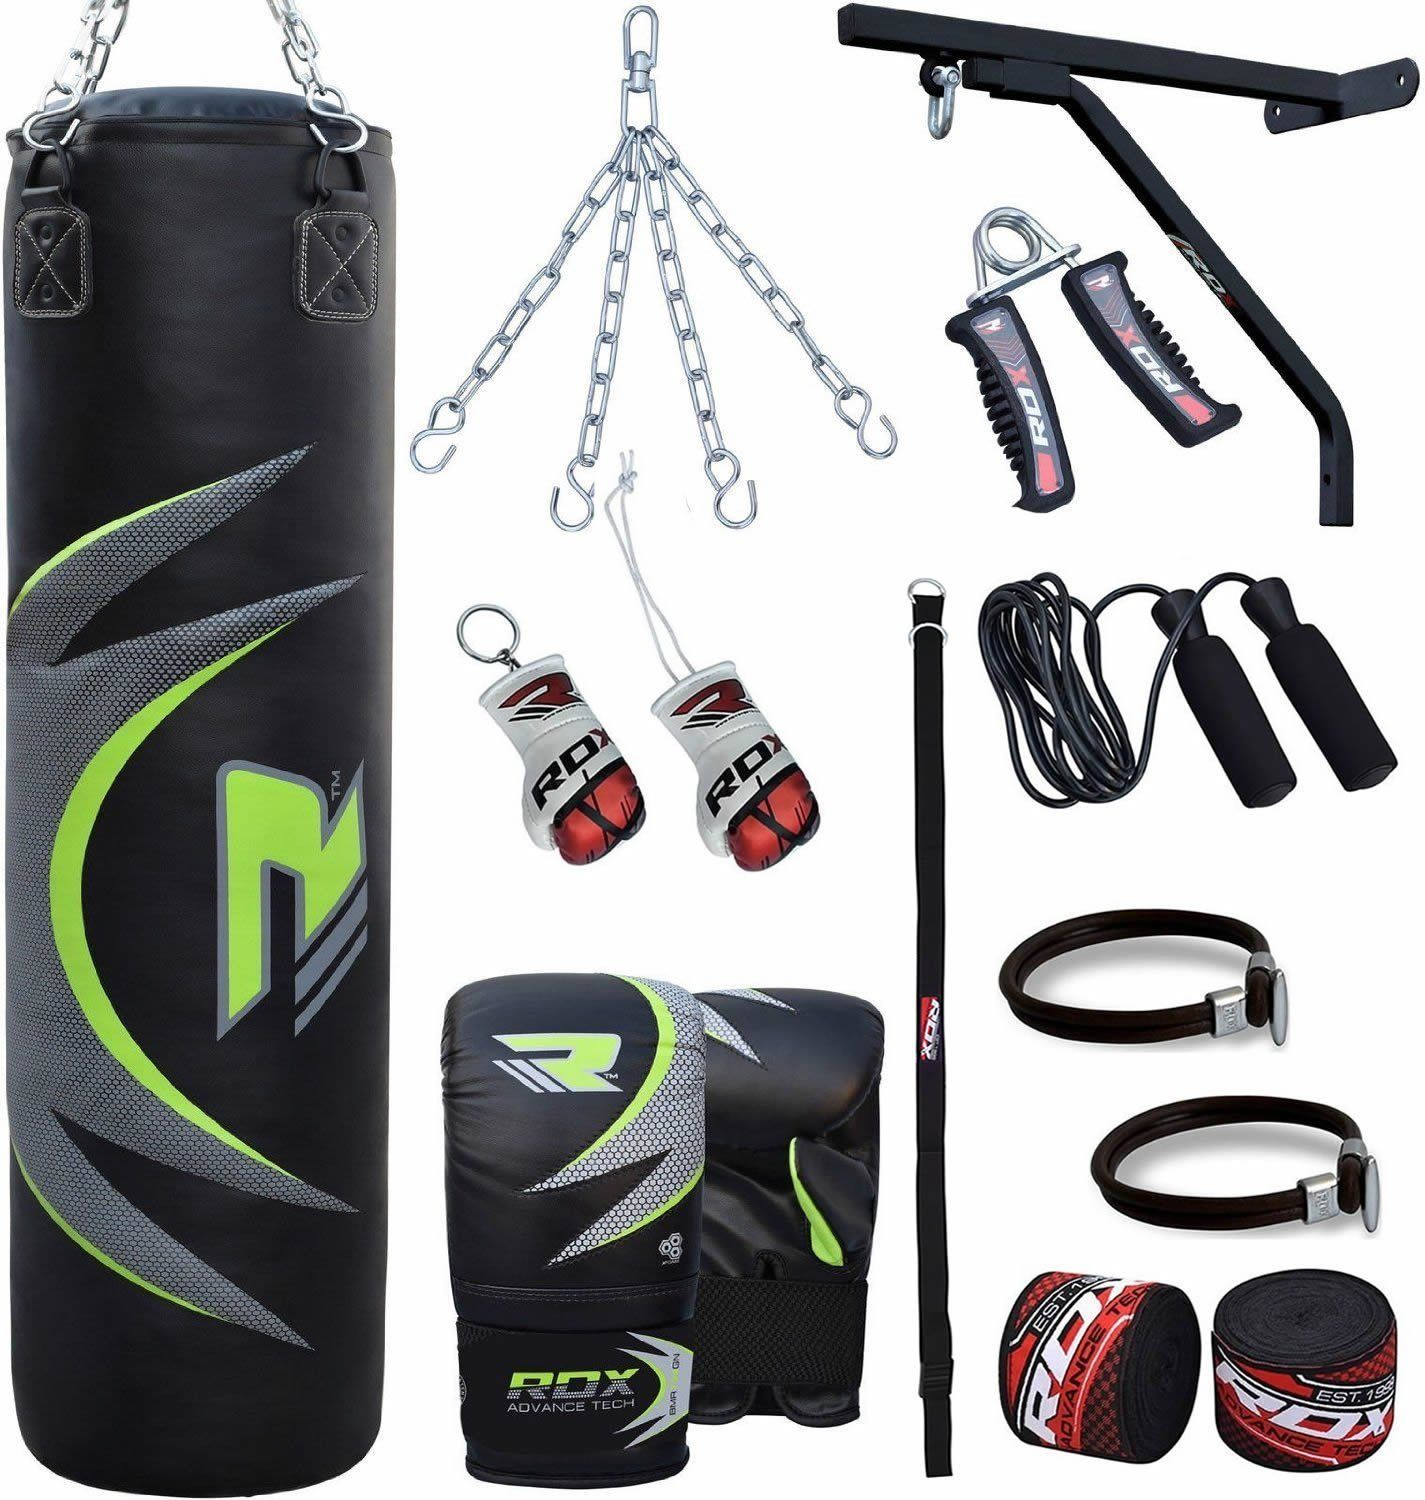 Martial Arts 4ft Filled Heavy Punch Bag Gloves,Chains,Bracket,Kick Boxing UFC